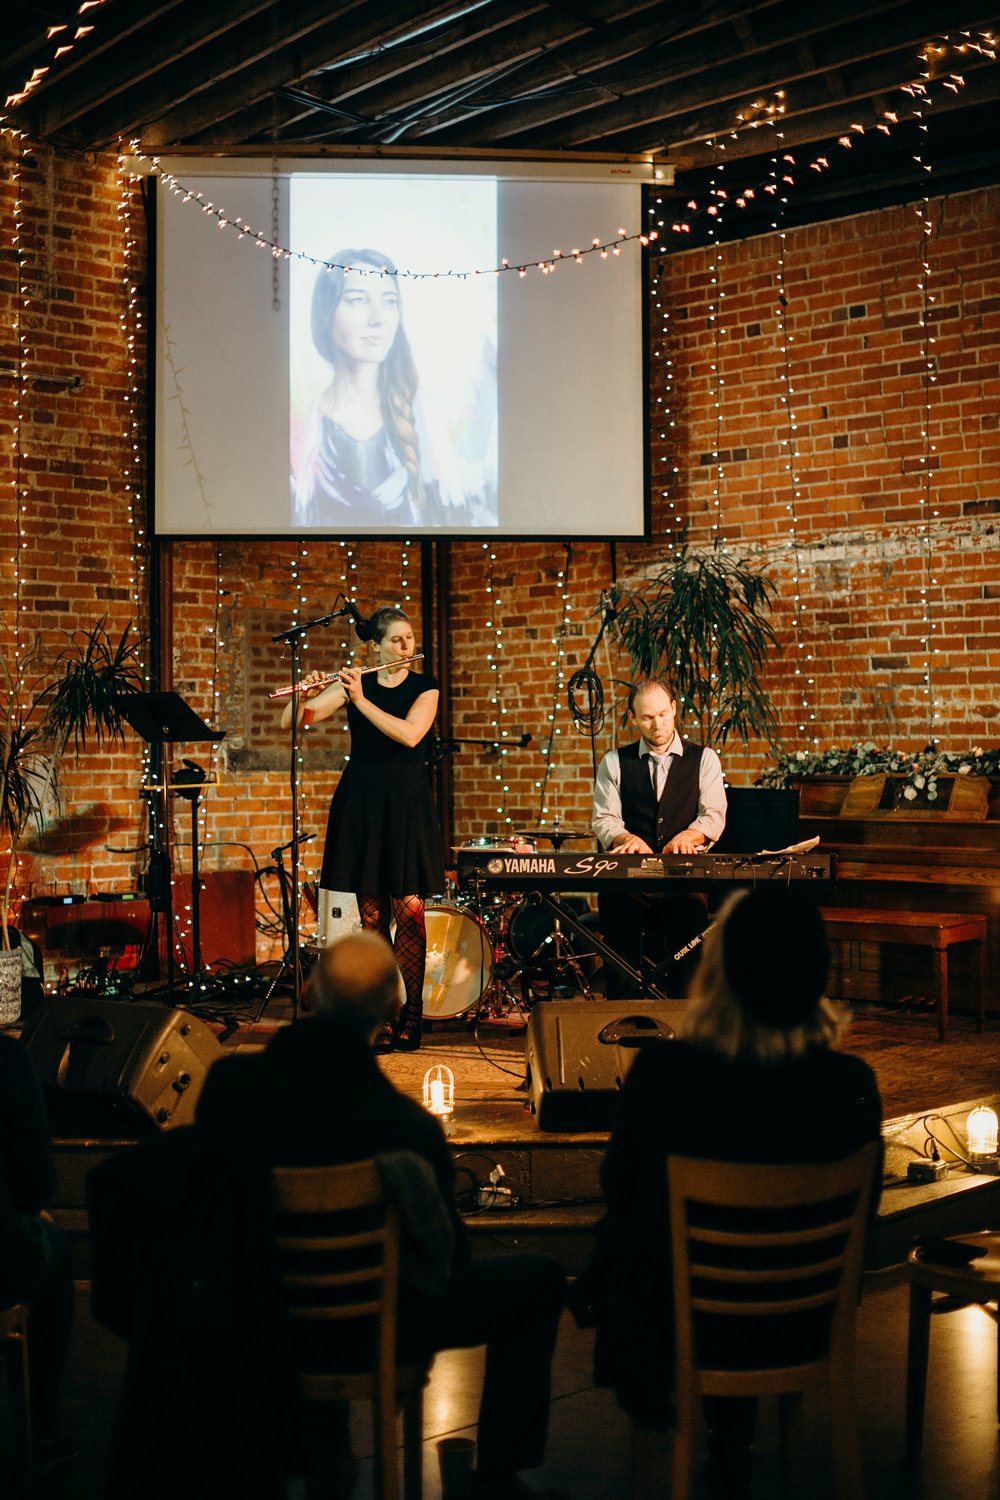 inspire duo performs for an art opening at the bolt Gallery in Fort collins, colorado photo courtesy of  Crista tppmann photography